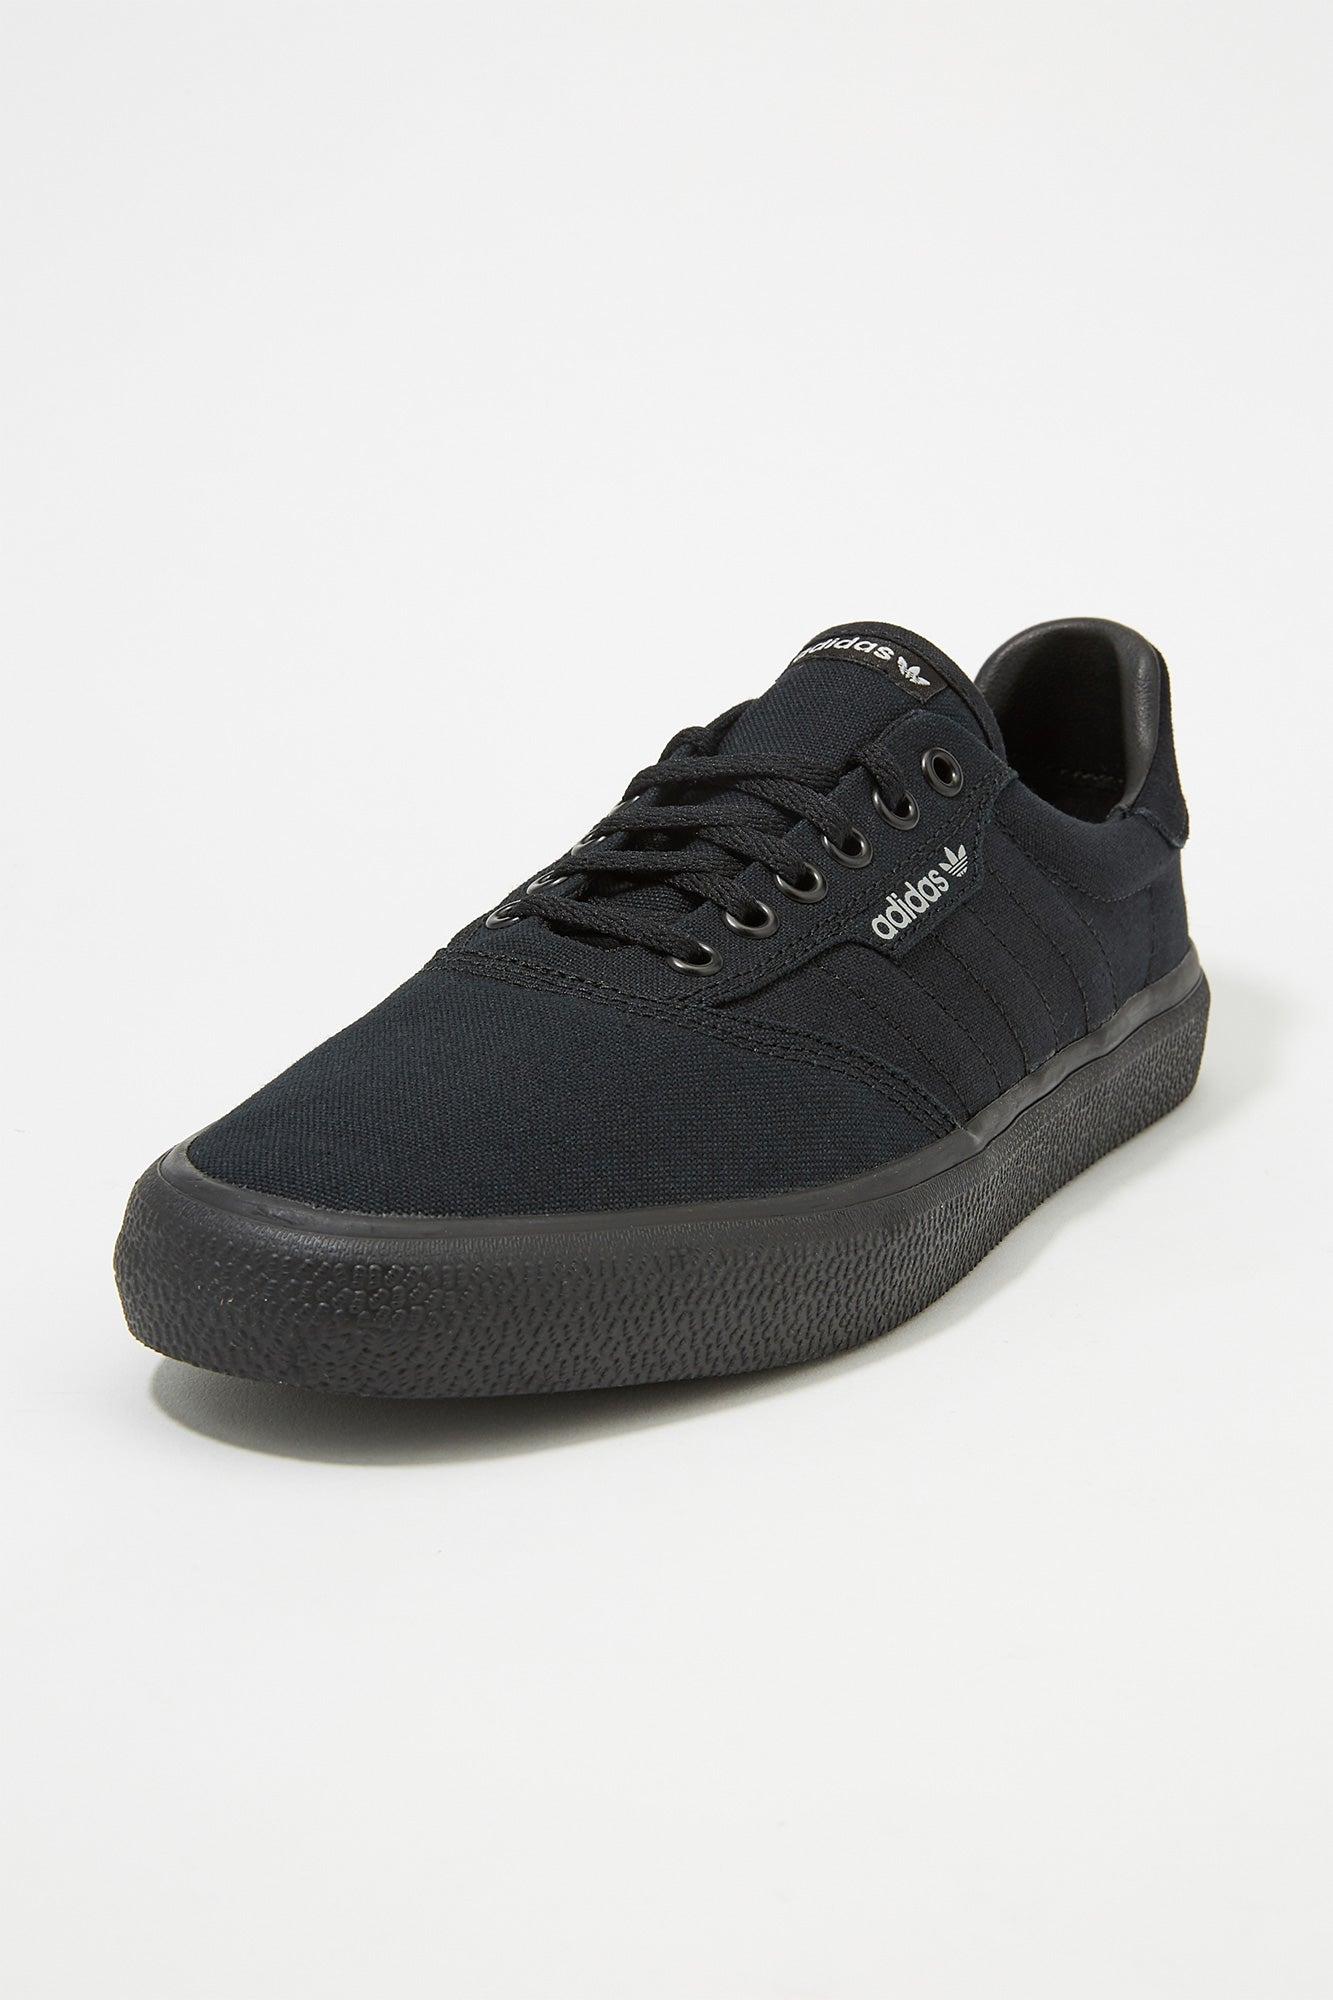 Adidas Mens 3MC Vulc Shoes  799e0e926